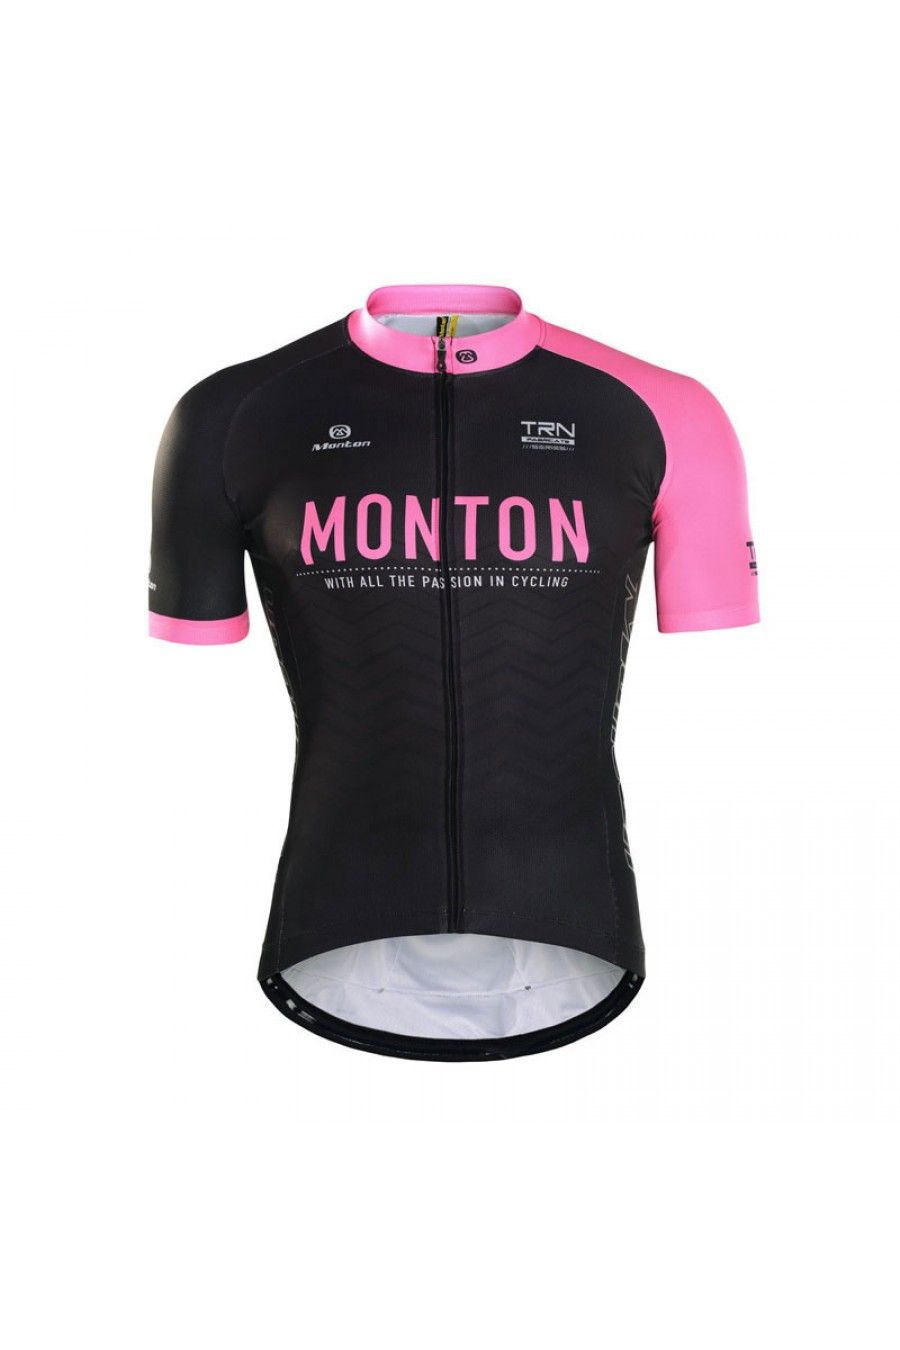 Cheap Cycle Jersey Cycling Jersey Design Cycling Design